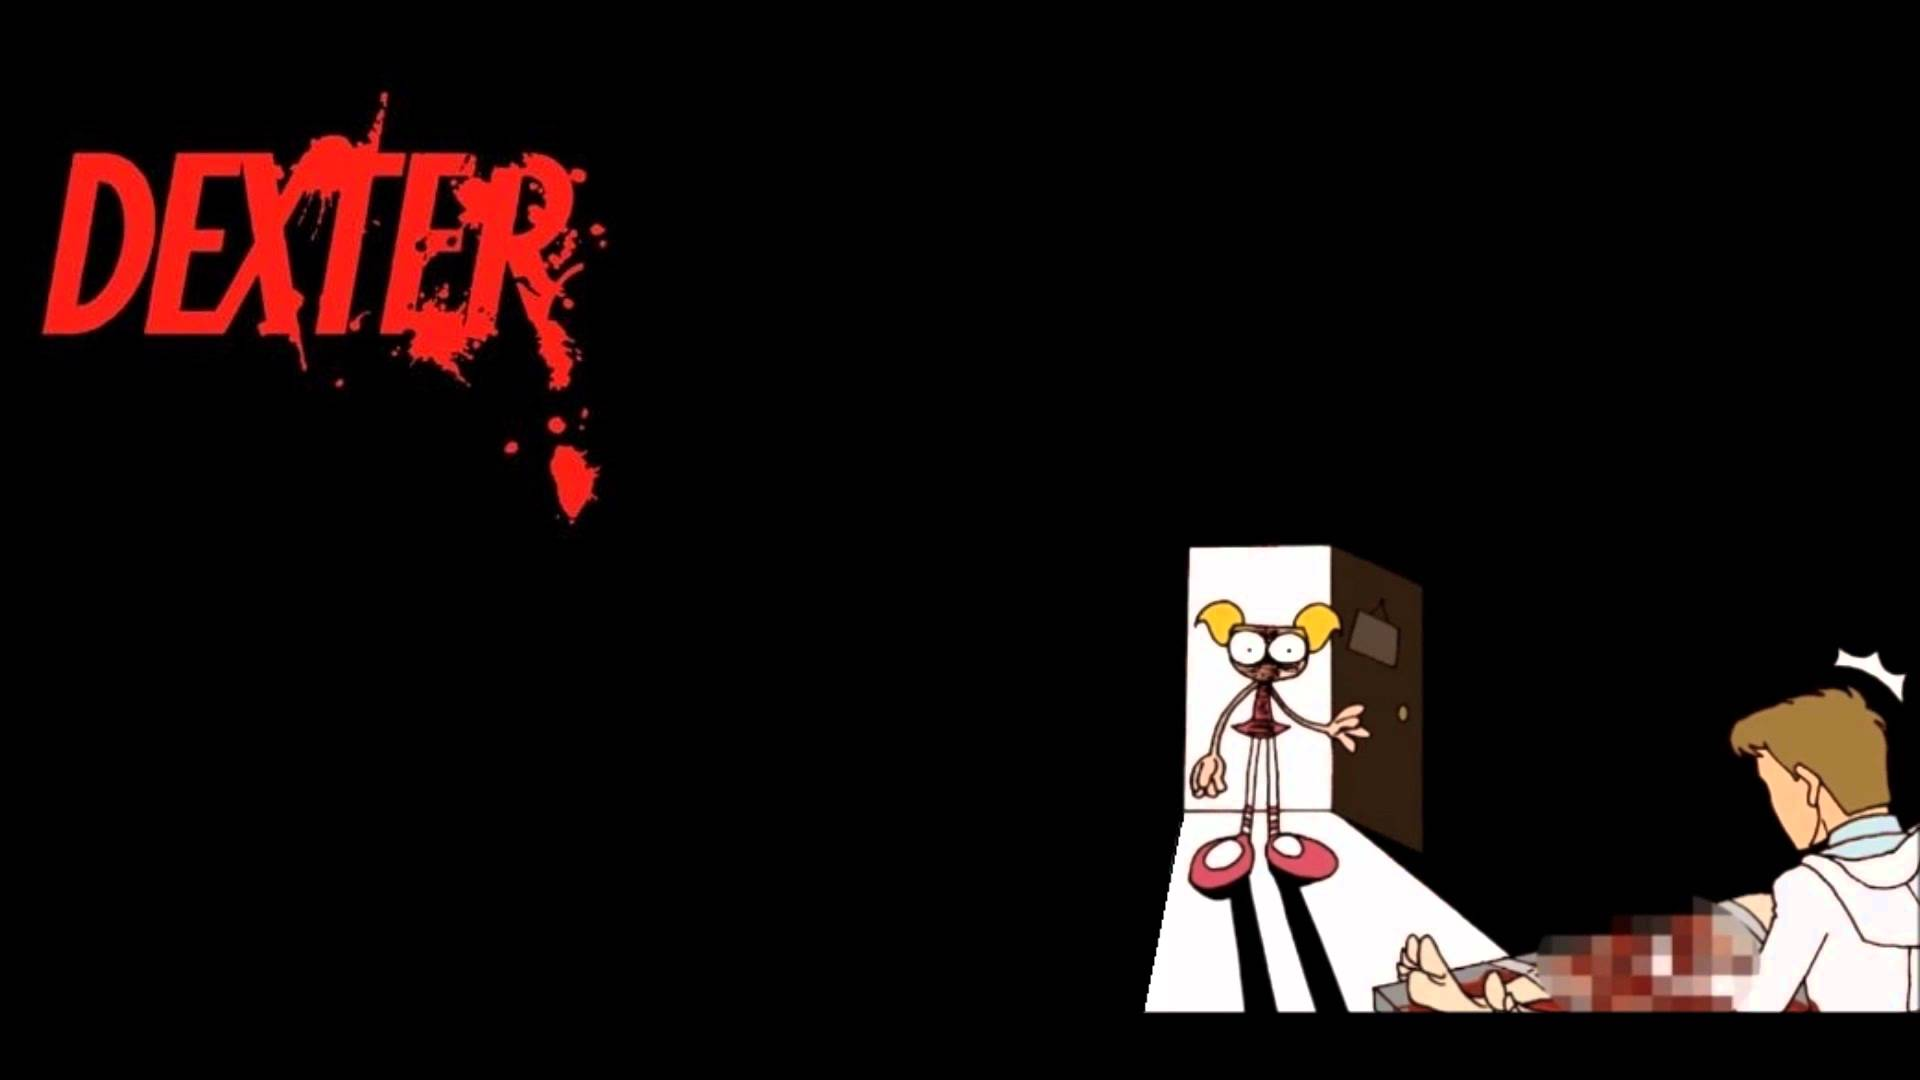 Dexter Wallpaper For Desktop 3